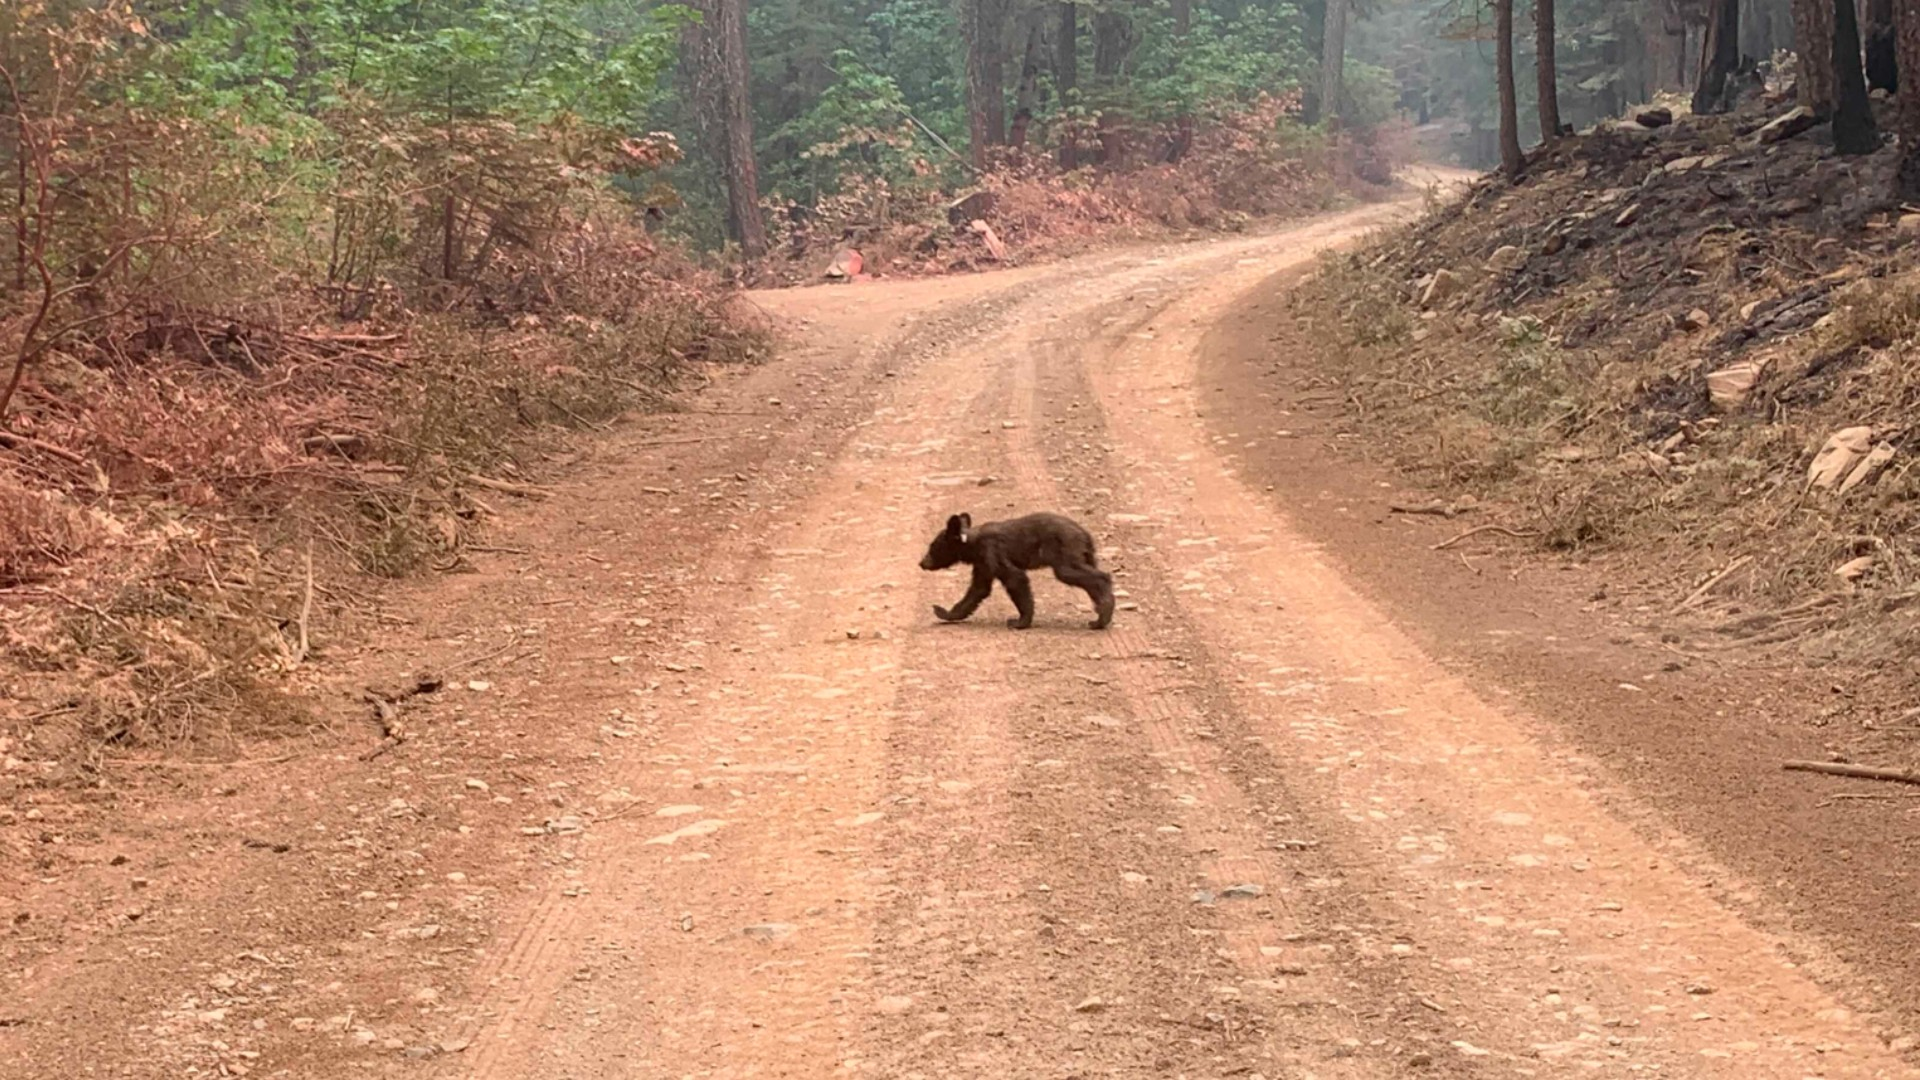 An orphaned bear cub struggles to survive as it walks alone along a mountain road impacted by the Dixie Fire in Plumas County, Calif., Sunday, Aug. 15, 2021. Thousands of Northern California homes remain threatened by the nation's largest wildfire and officials warn the danger of new blazes erupting across the West is high because of unstable weather. (AP Photo/Eugene Garcia)